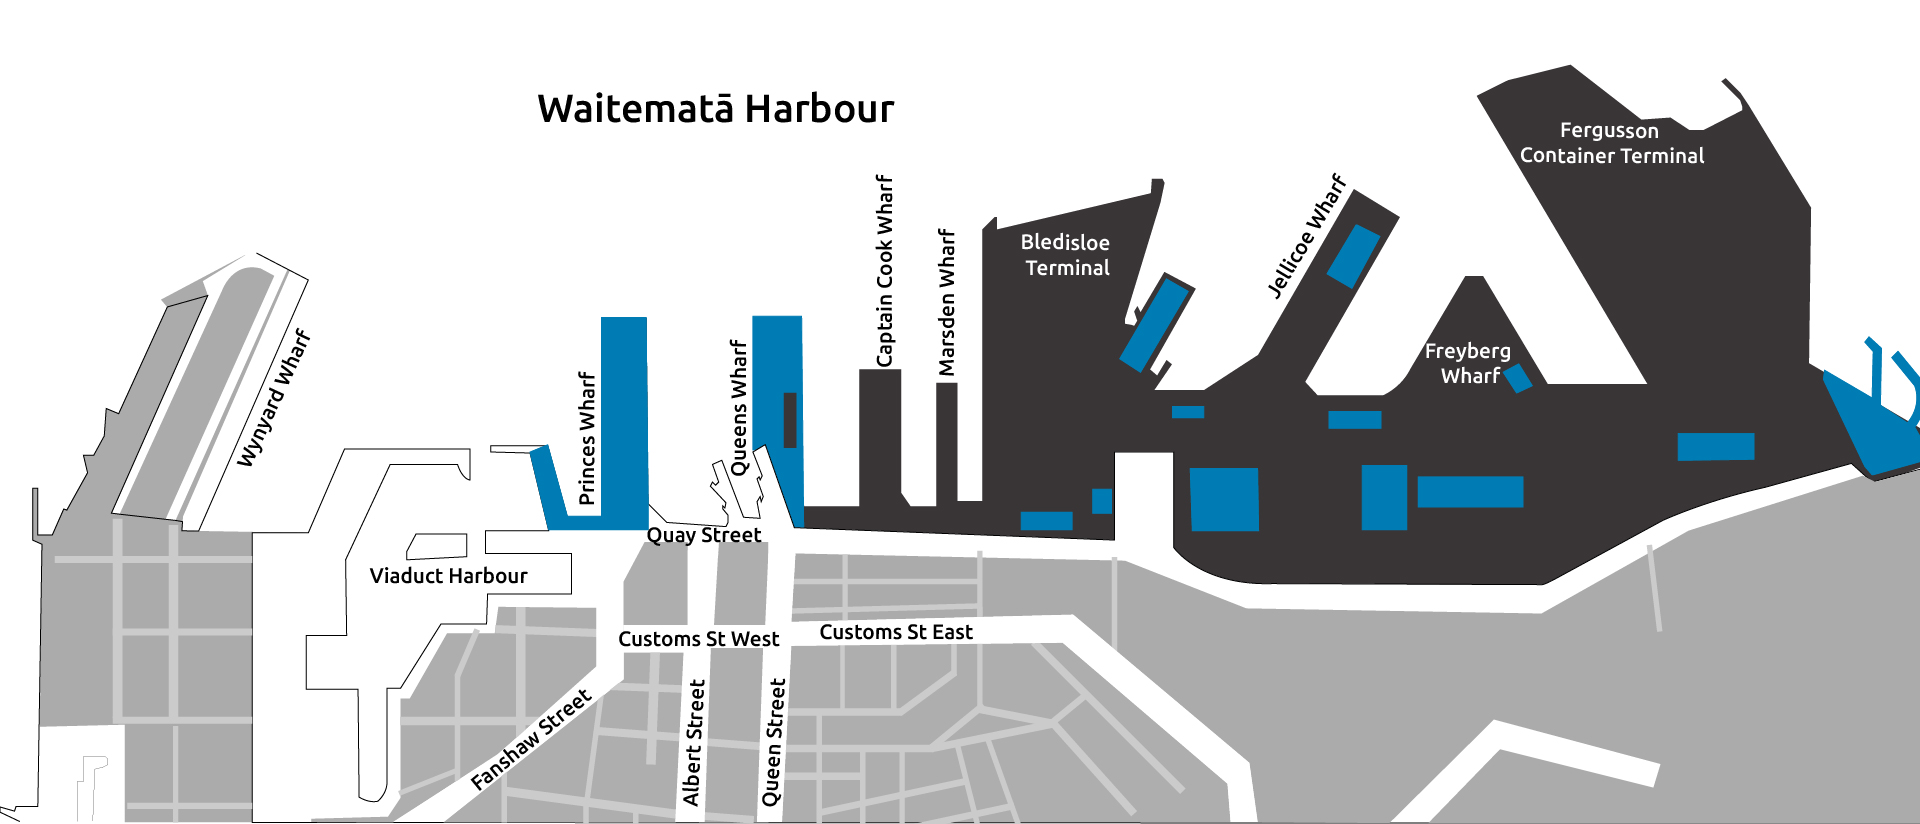 Aerial sketch of the port and harbour showing Wynyard wharf, Viaduct Harbour, Princess Wharf, Queens Wharf, Captain Cook Wharf, Marsden Wharf, Bledisloe Terminal, Jellicoe Wharf, Freyberg Wharf and Fergusson Container Terminal